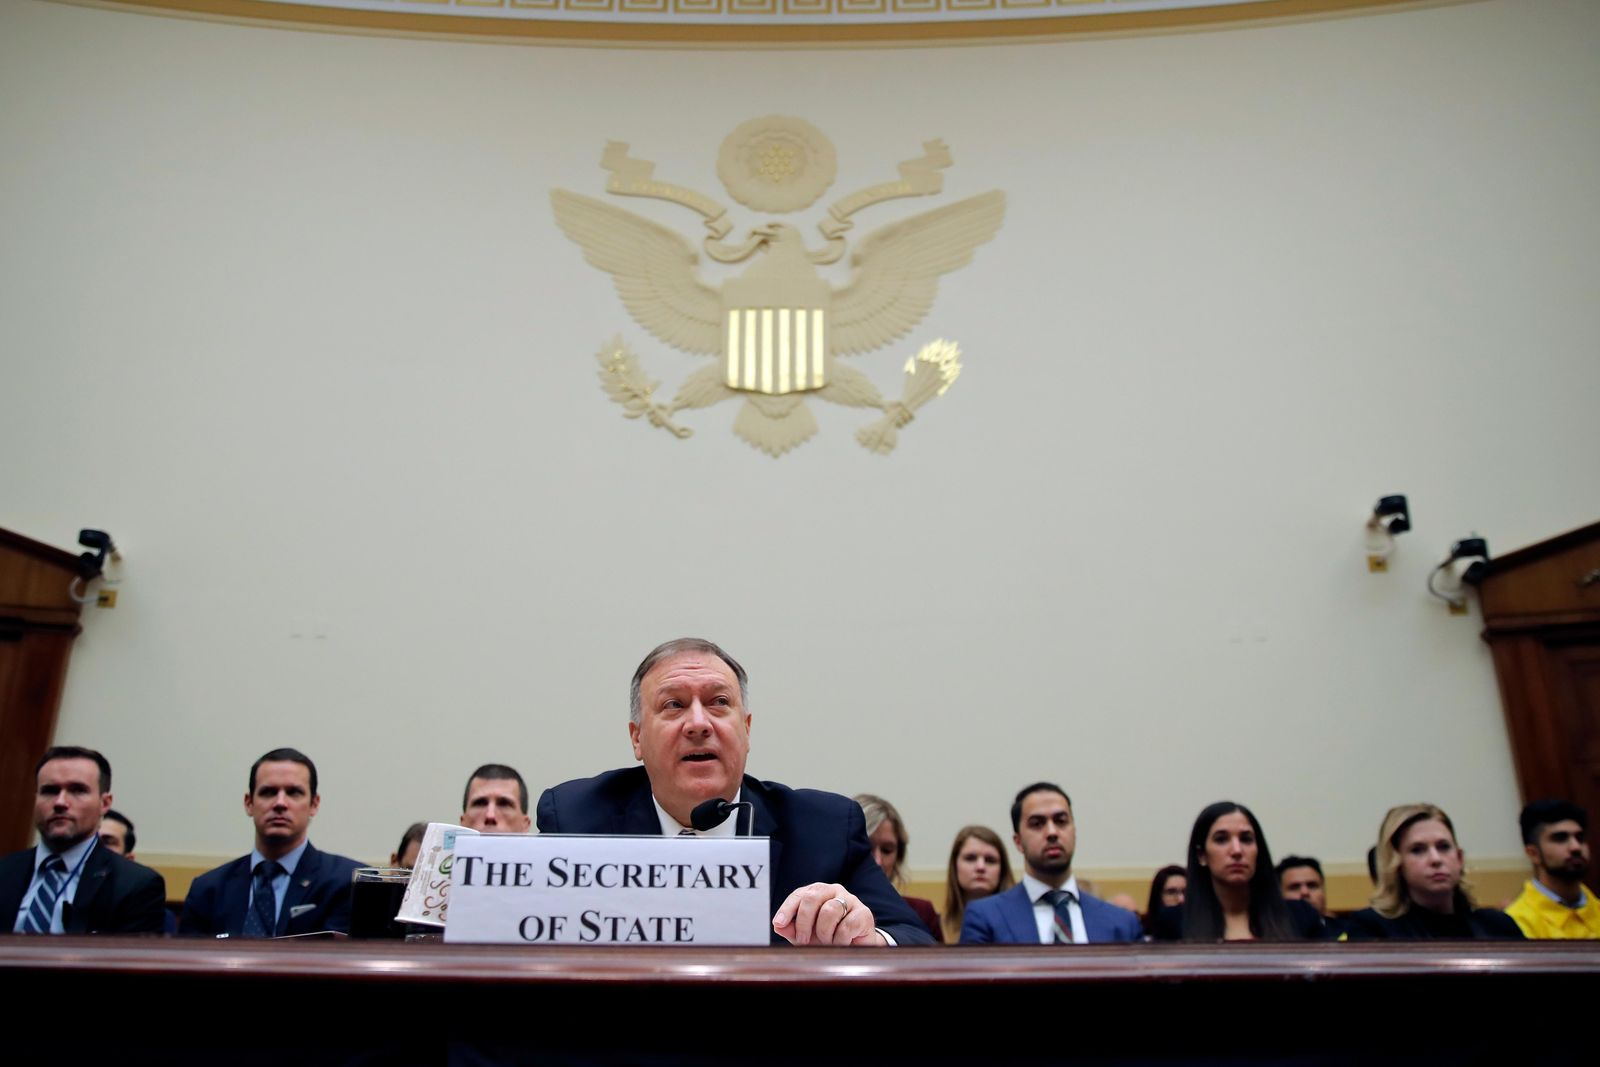 Secretary of State Mike Pompeo testifies during a House Foreign Affairs Committee hearing on Capitol Hill in Washington, Friday, Feb. 28, 2020, about the Trump administration's policies on Iran, Iraq and the use of force. (AP Photo/Carolyn Kaster)